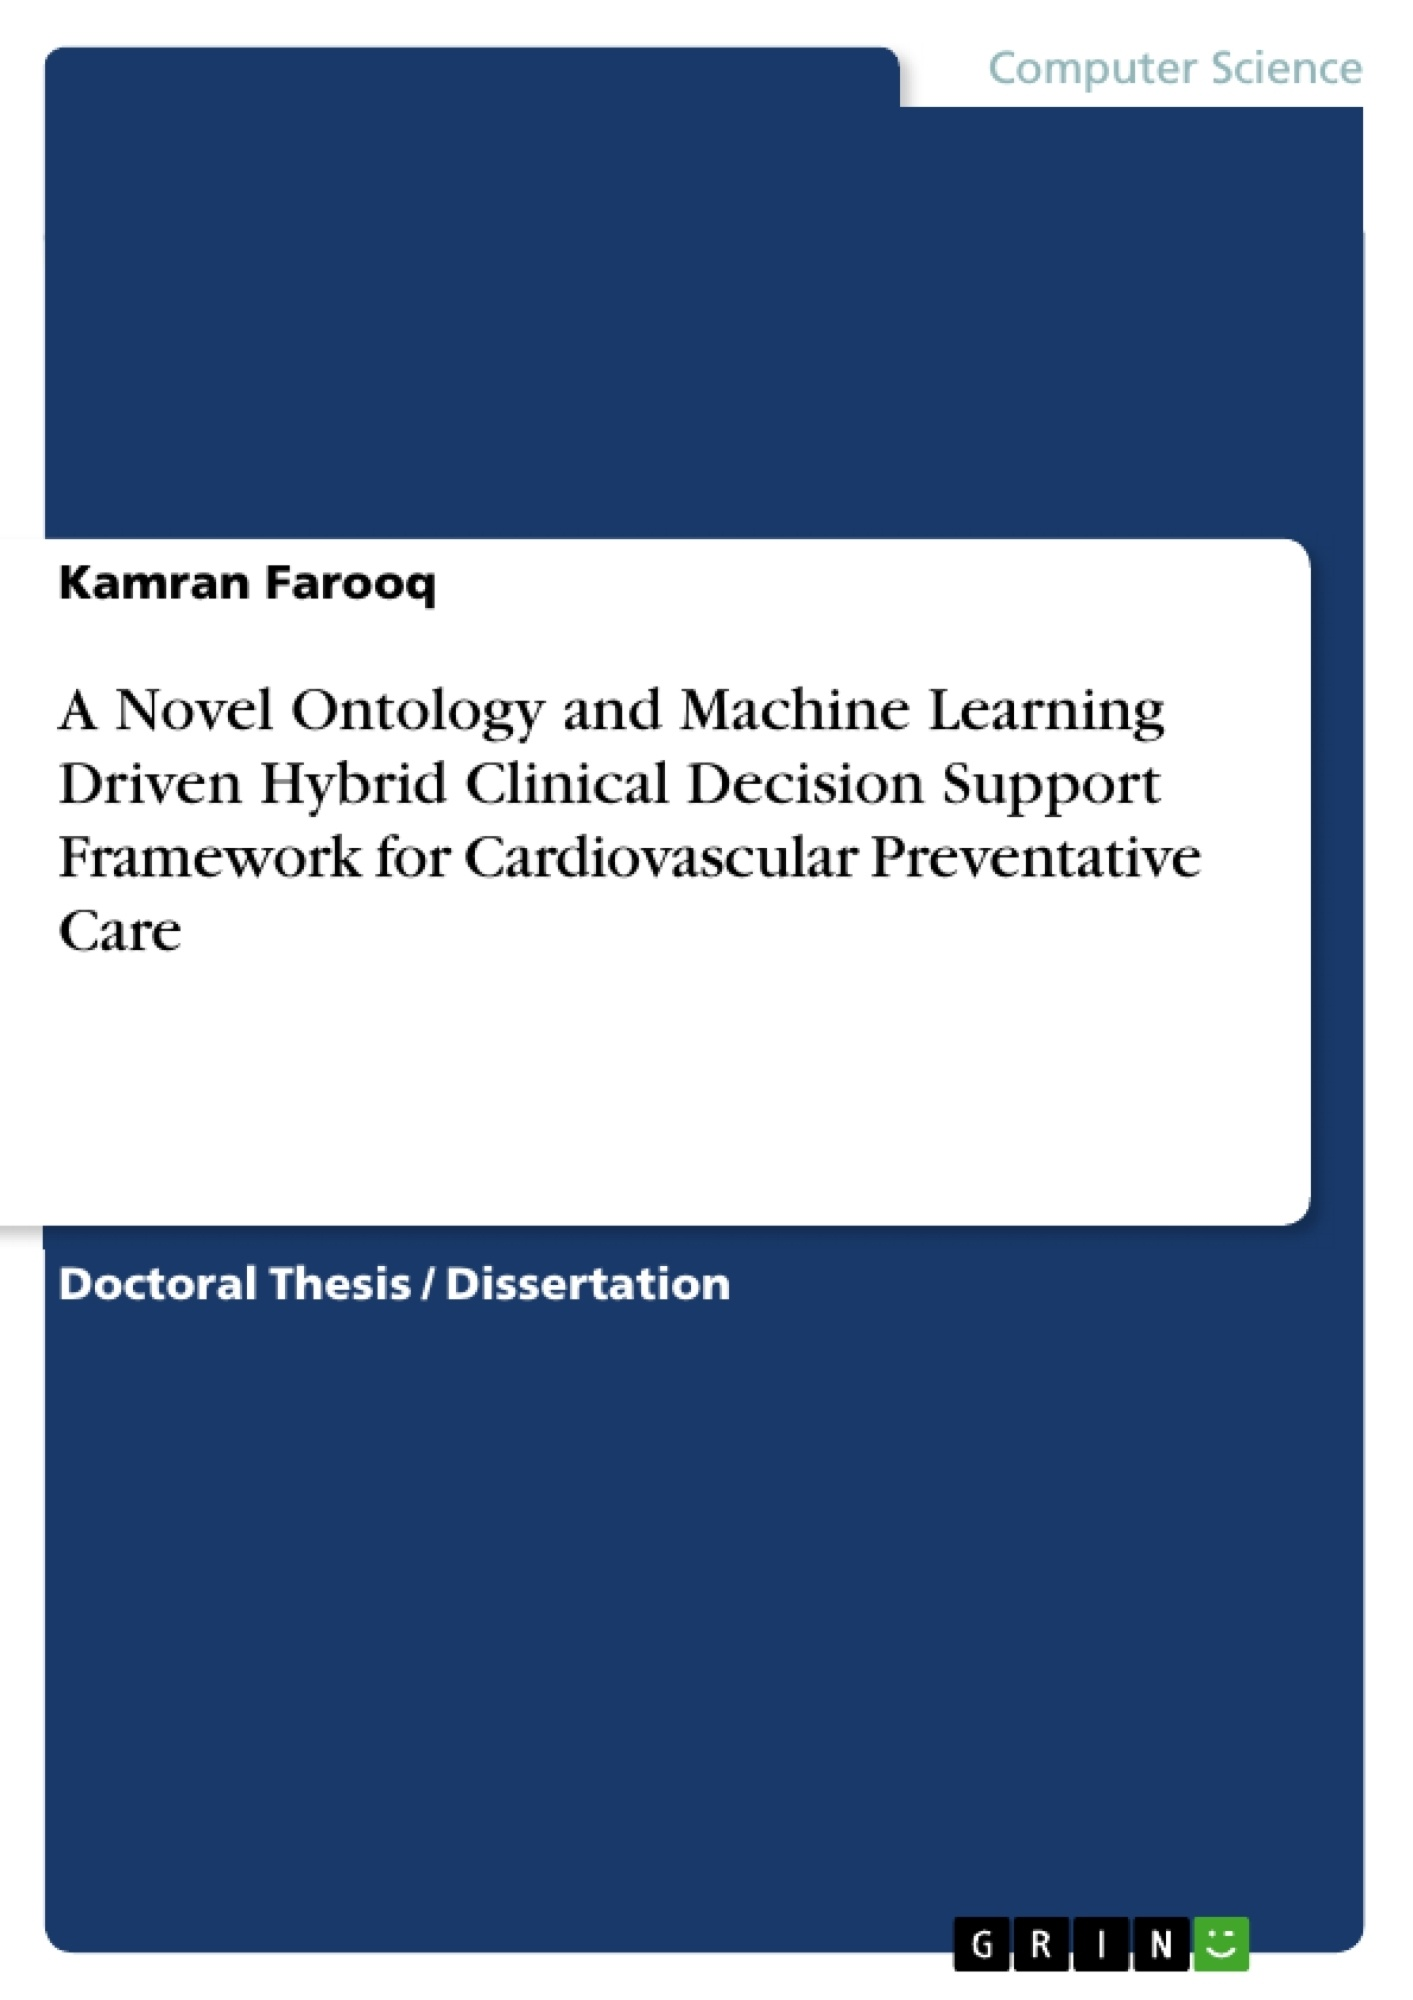 Title: A Novel Ontology and Machine Learning Driven Hybrid Clinical Decision Support Framework for Cardiovascular Preventative Care